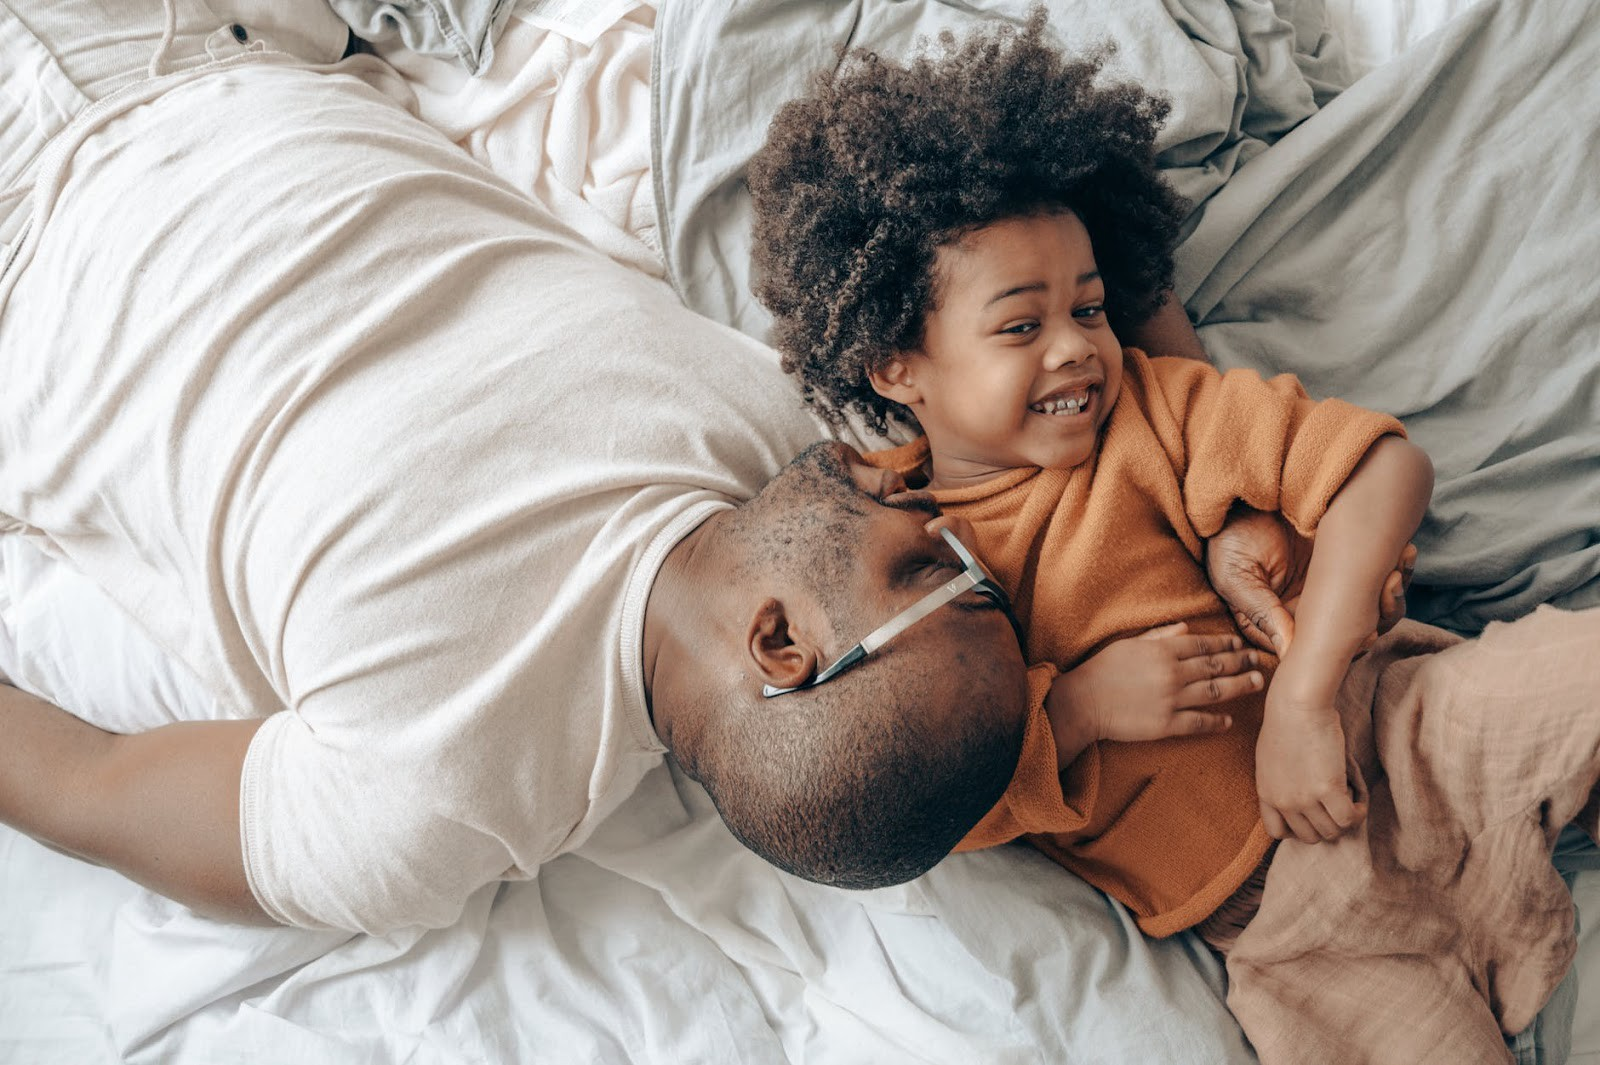 A father and his son playing on the bed